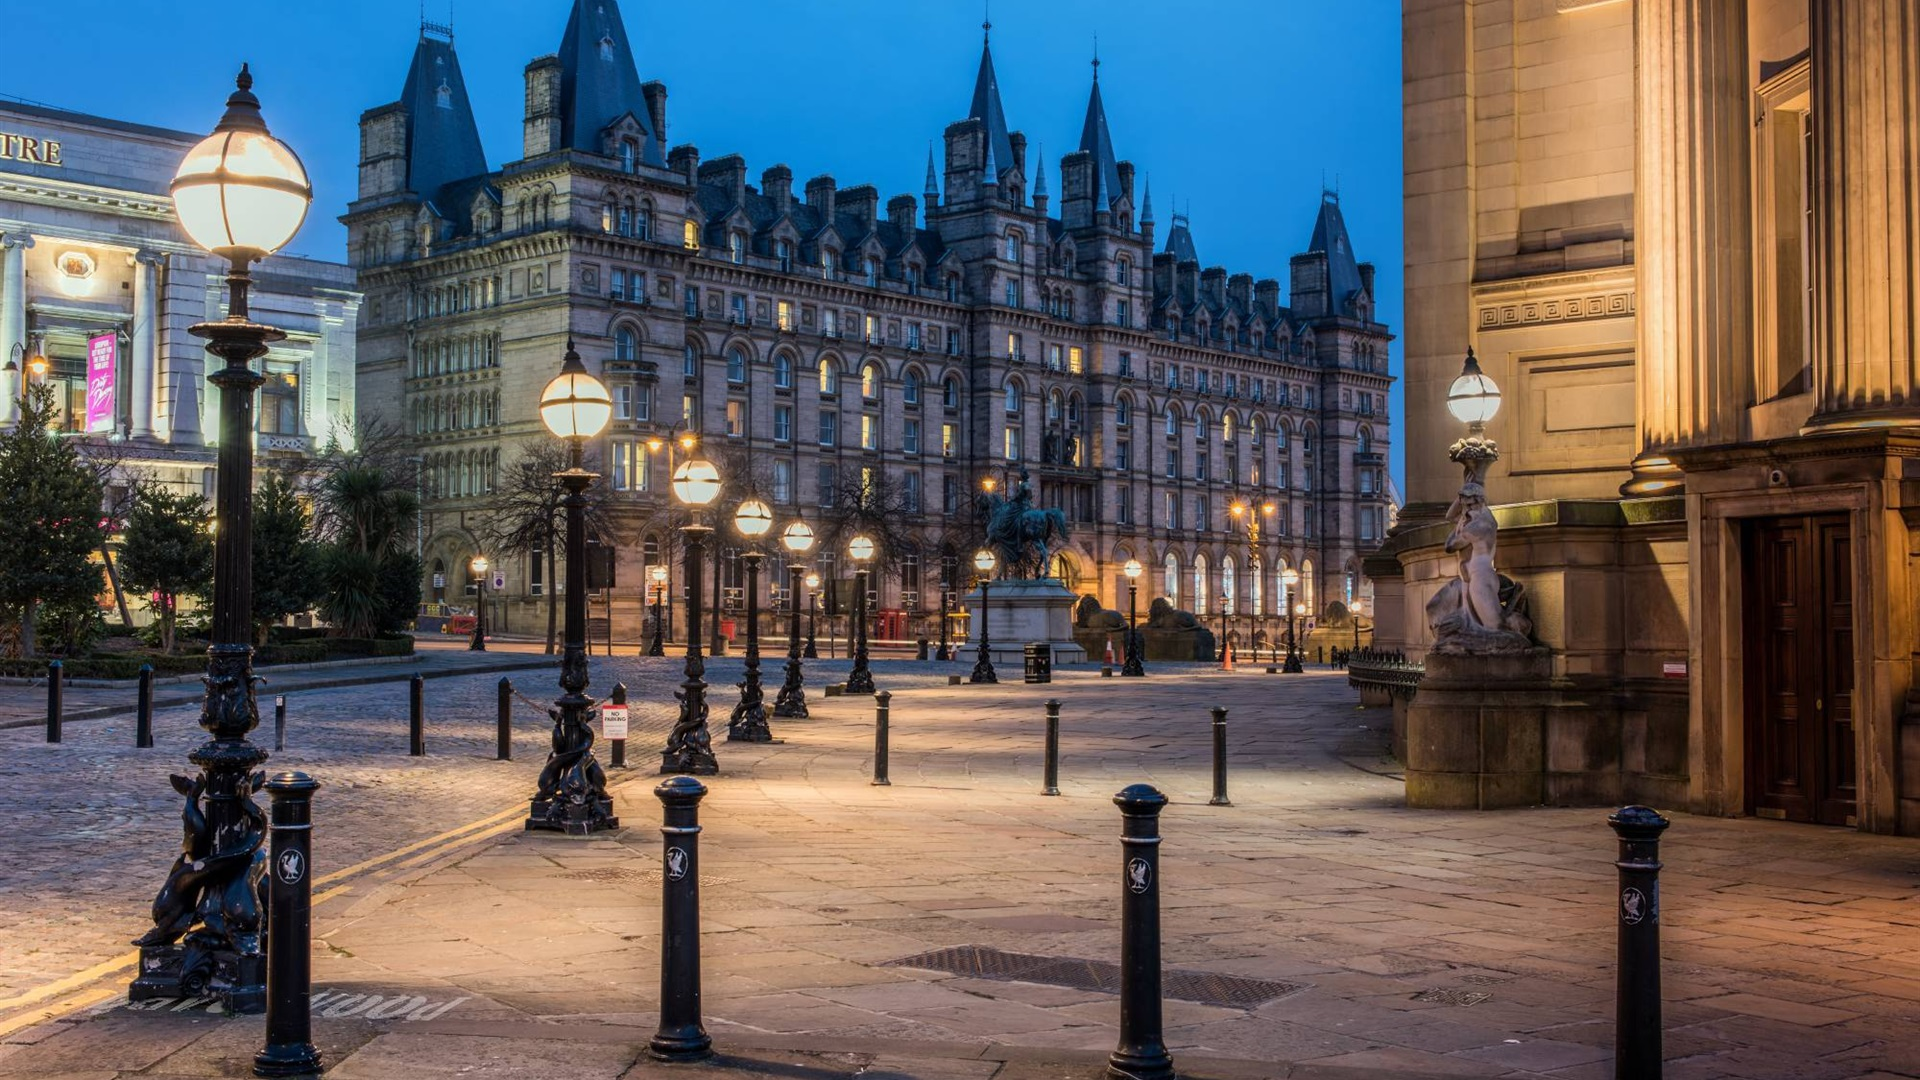 Wallpaper Liverpool England City Lamps Night 1920x1200 Hd Picture Image